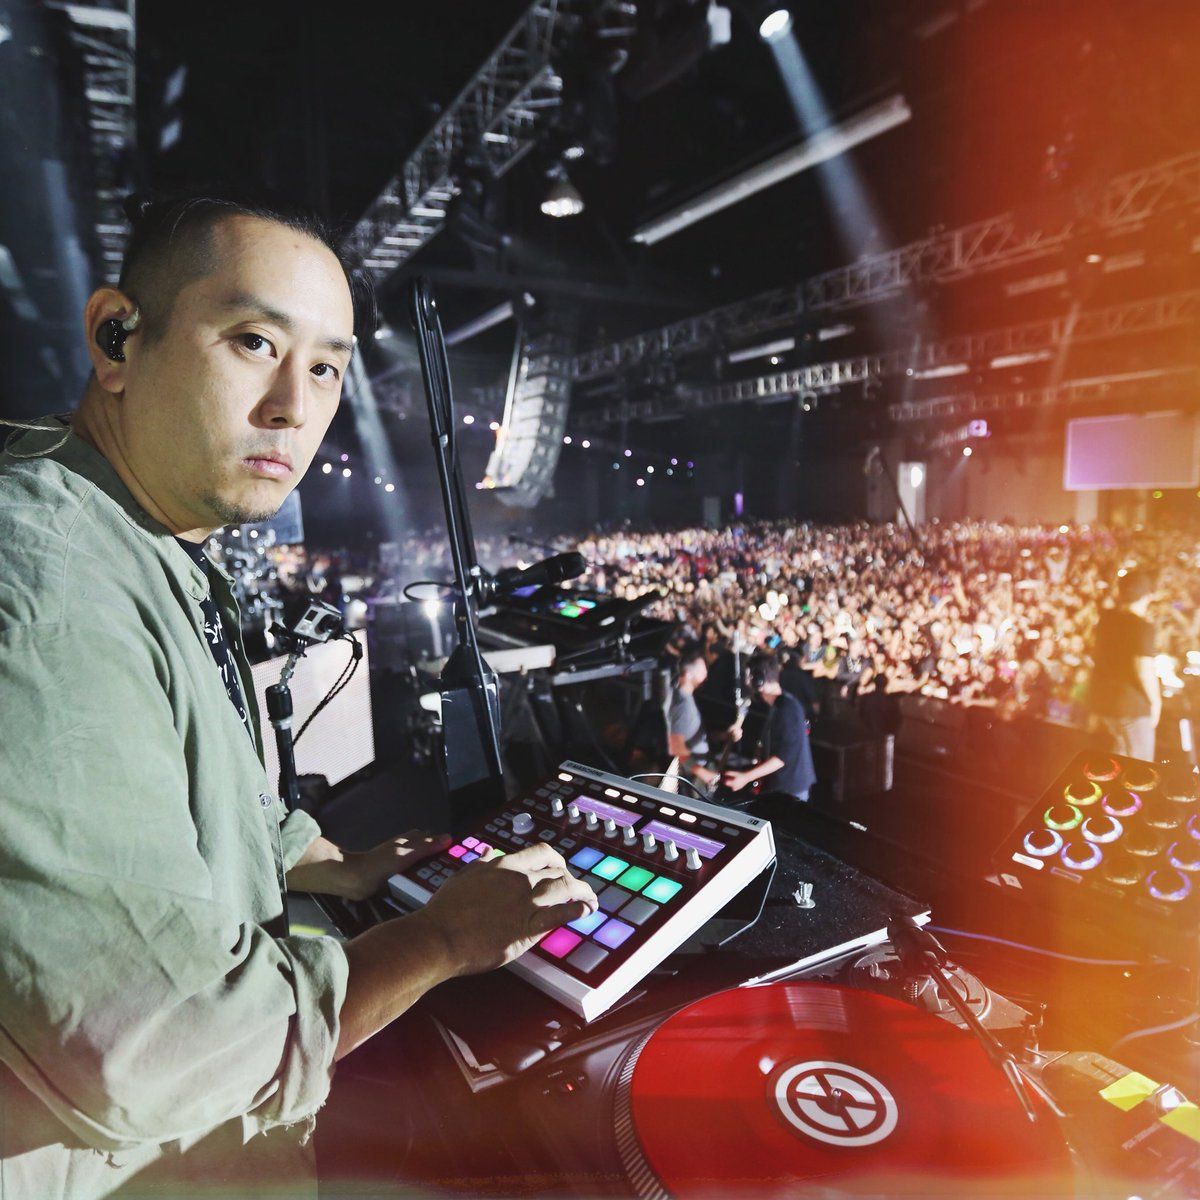 Happy Birthday @joehahnLP https://t.co/OizwnS6NSa